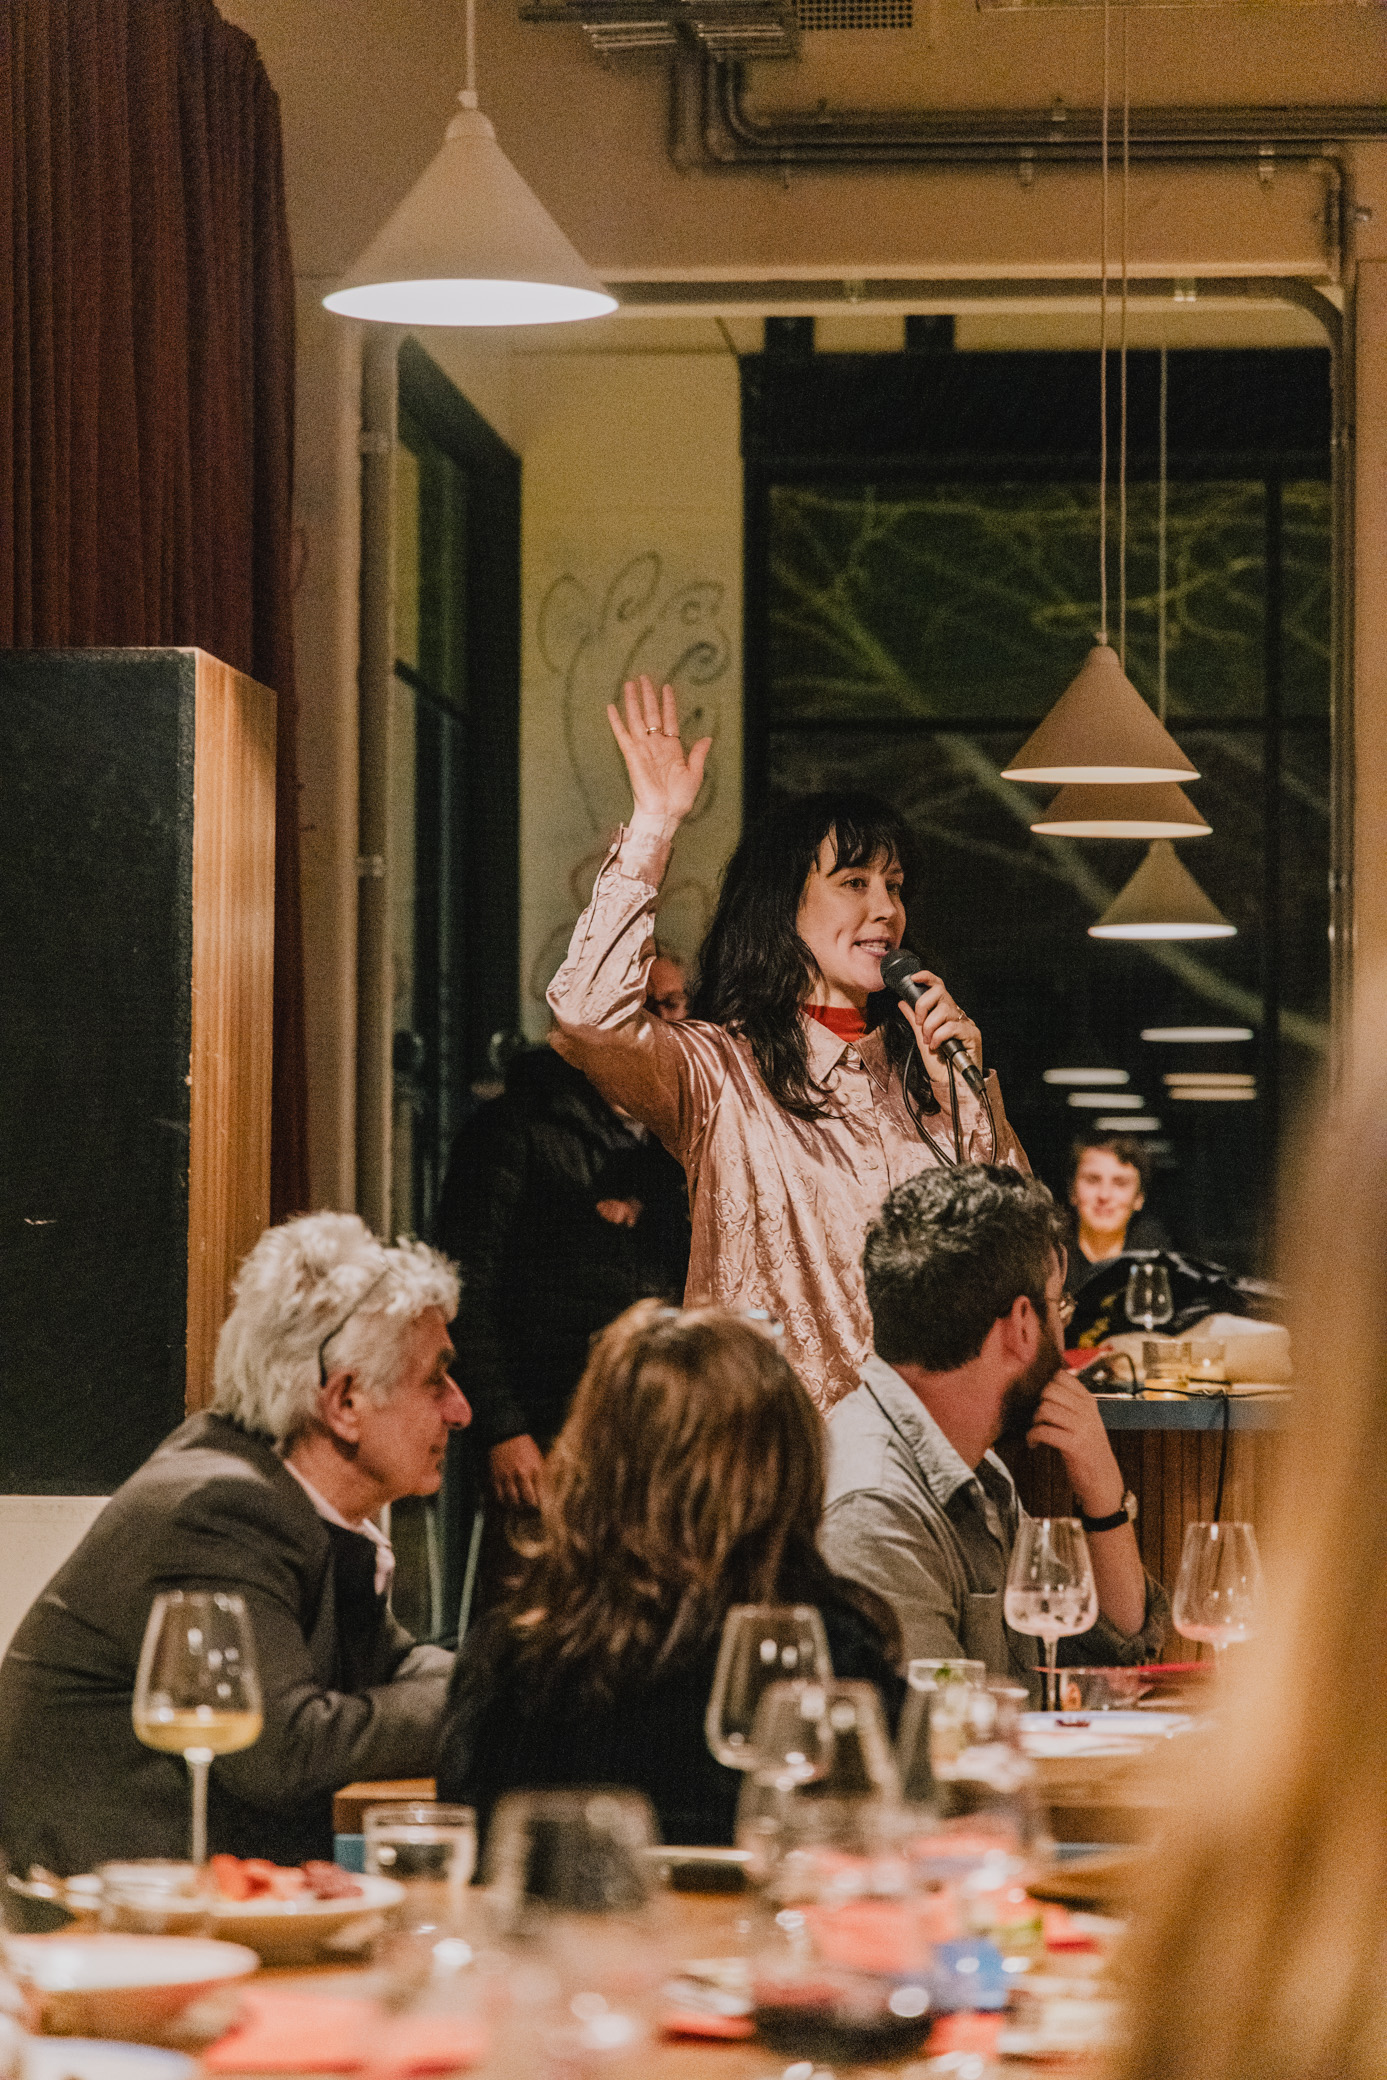 image a person waving their hand at the disorganising dinner